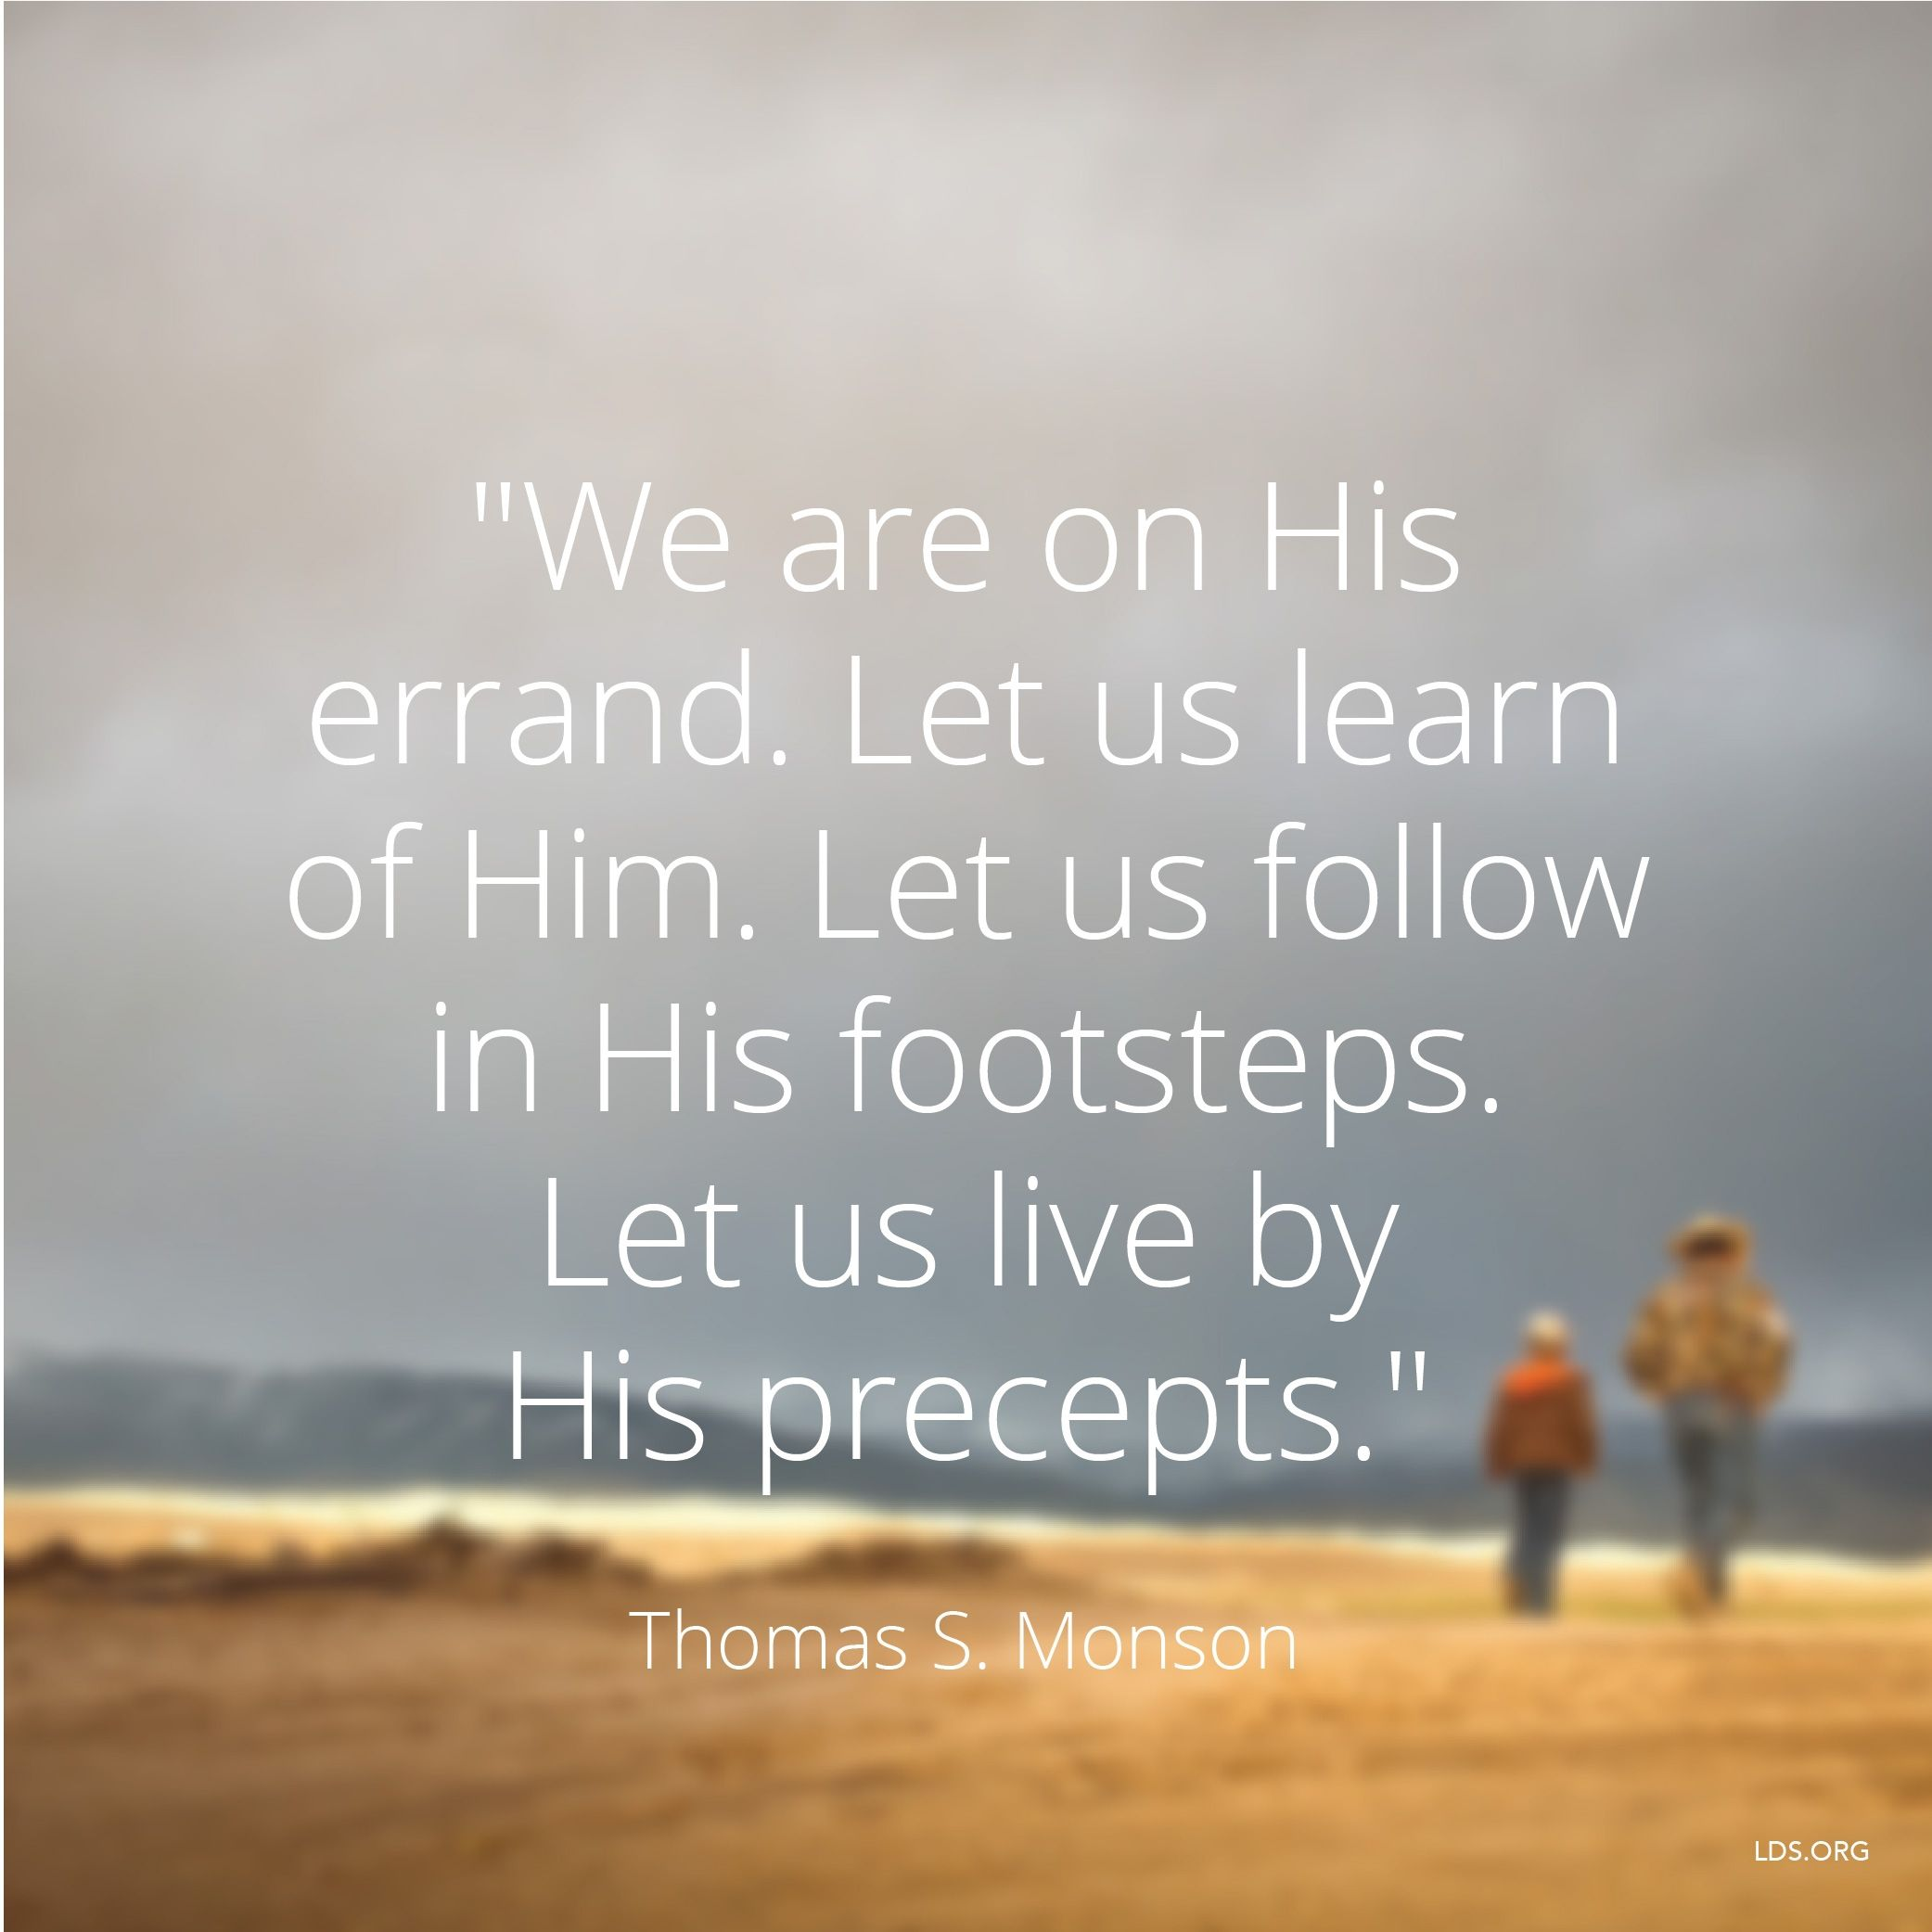 """""""We are on His errand. Let us learn of Him. Let us follow in His footsteps. Let us live by His precepts.""""—President Thomas S. Monson, """"The Priesthood—a Sacred Gift"""""""